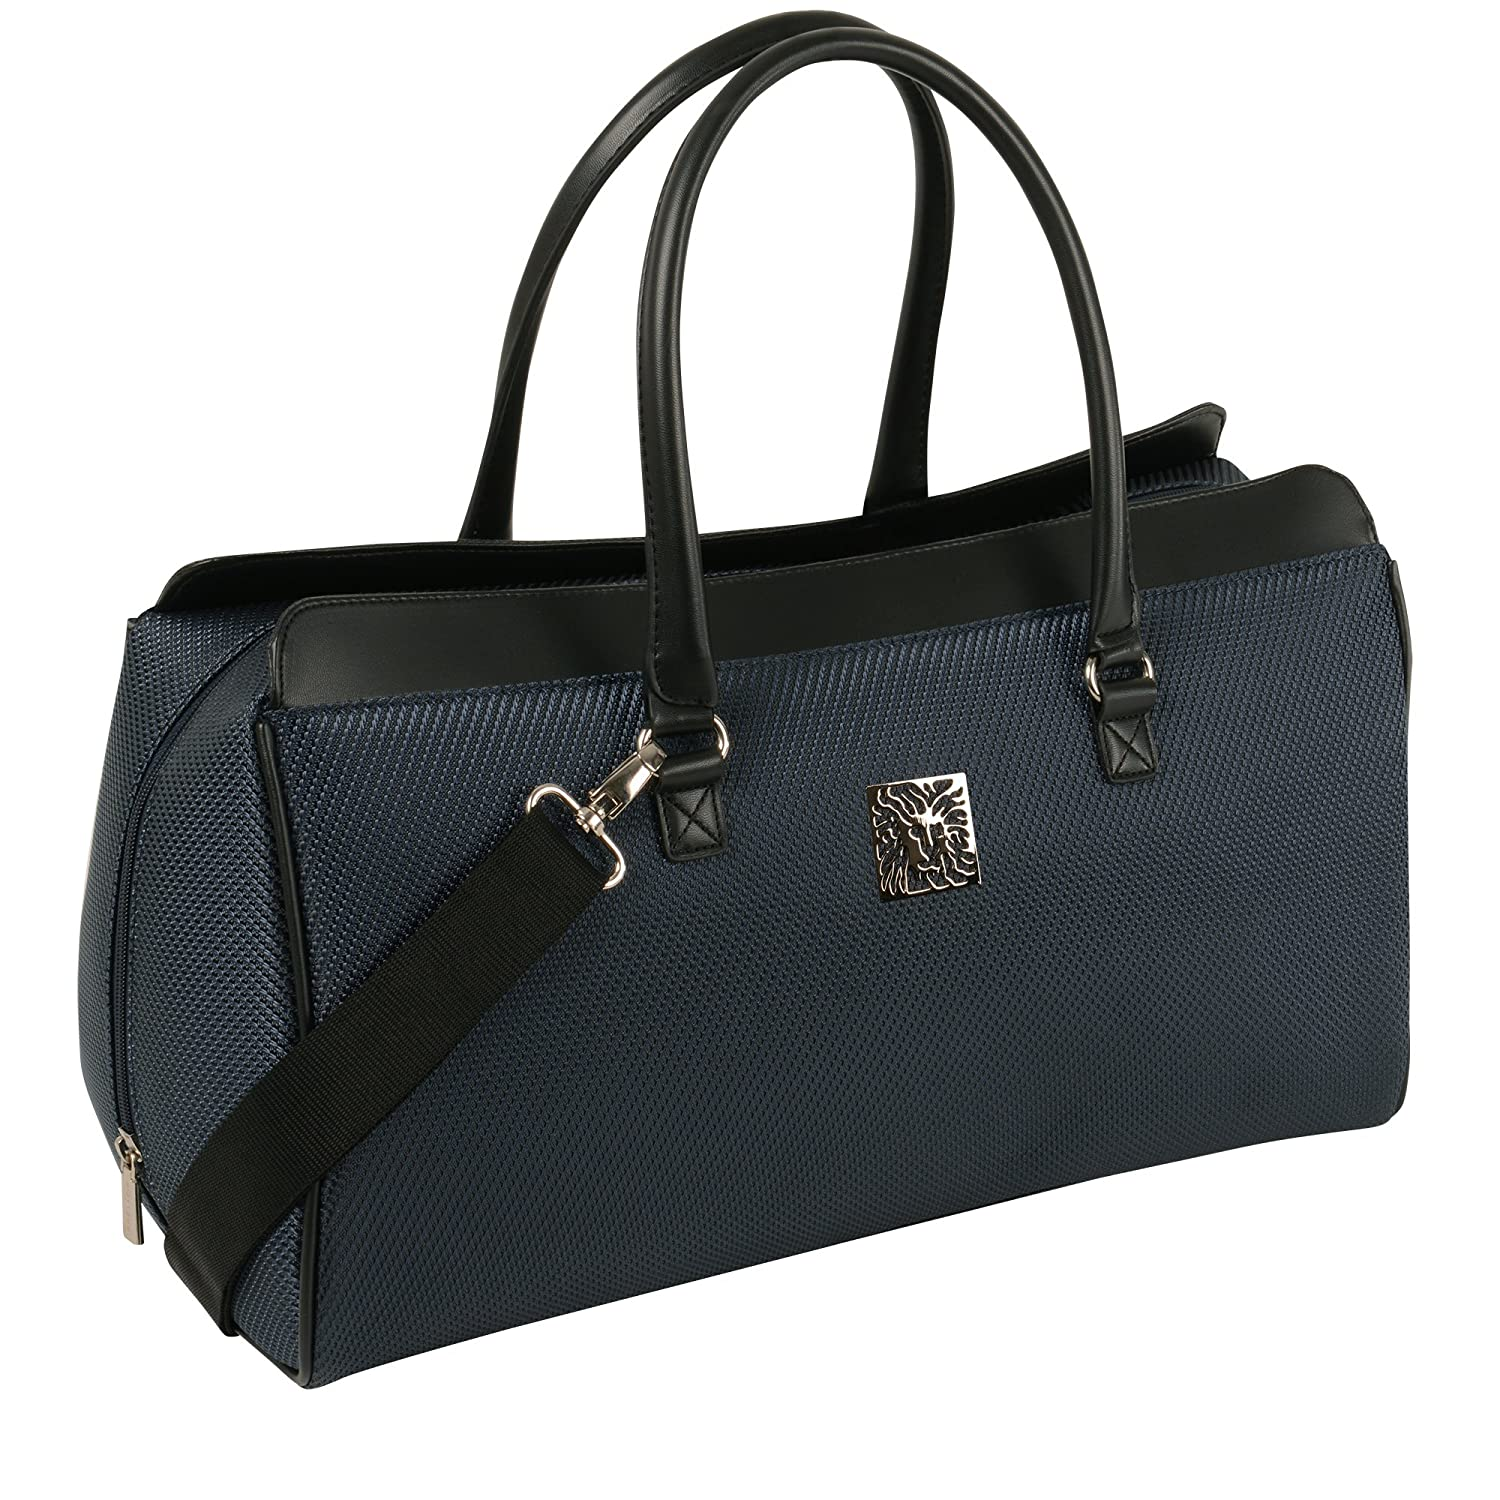 Anne Klein Oslo Carry All Satchel Tote, Navy, One Size 7927C06